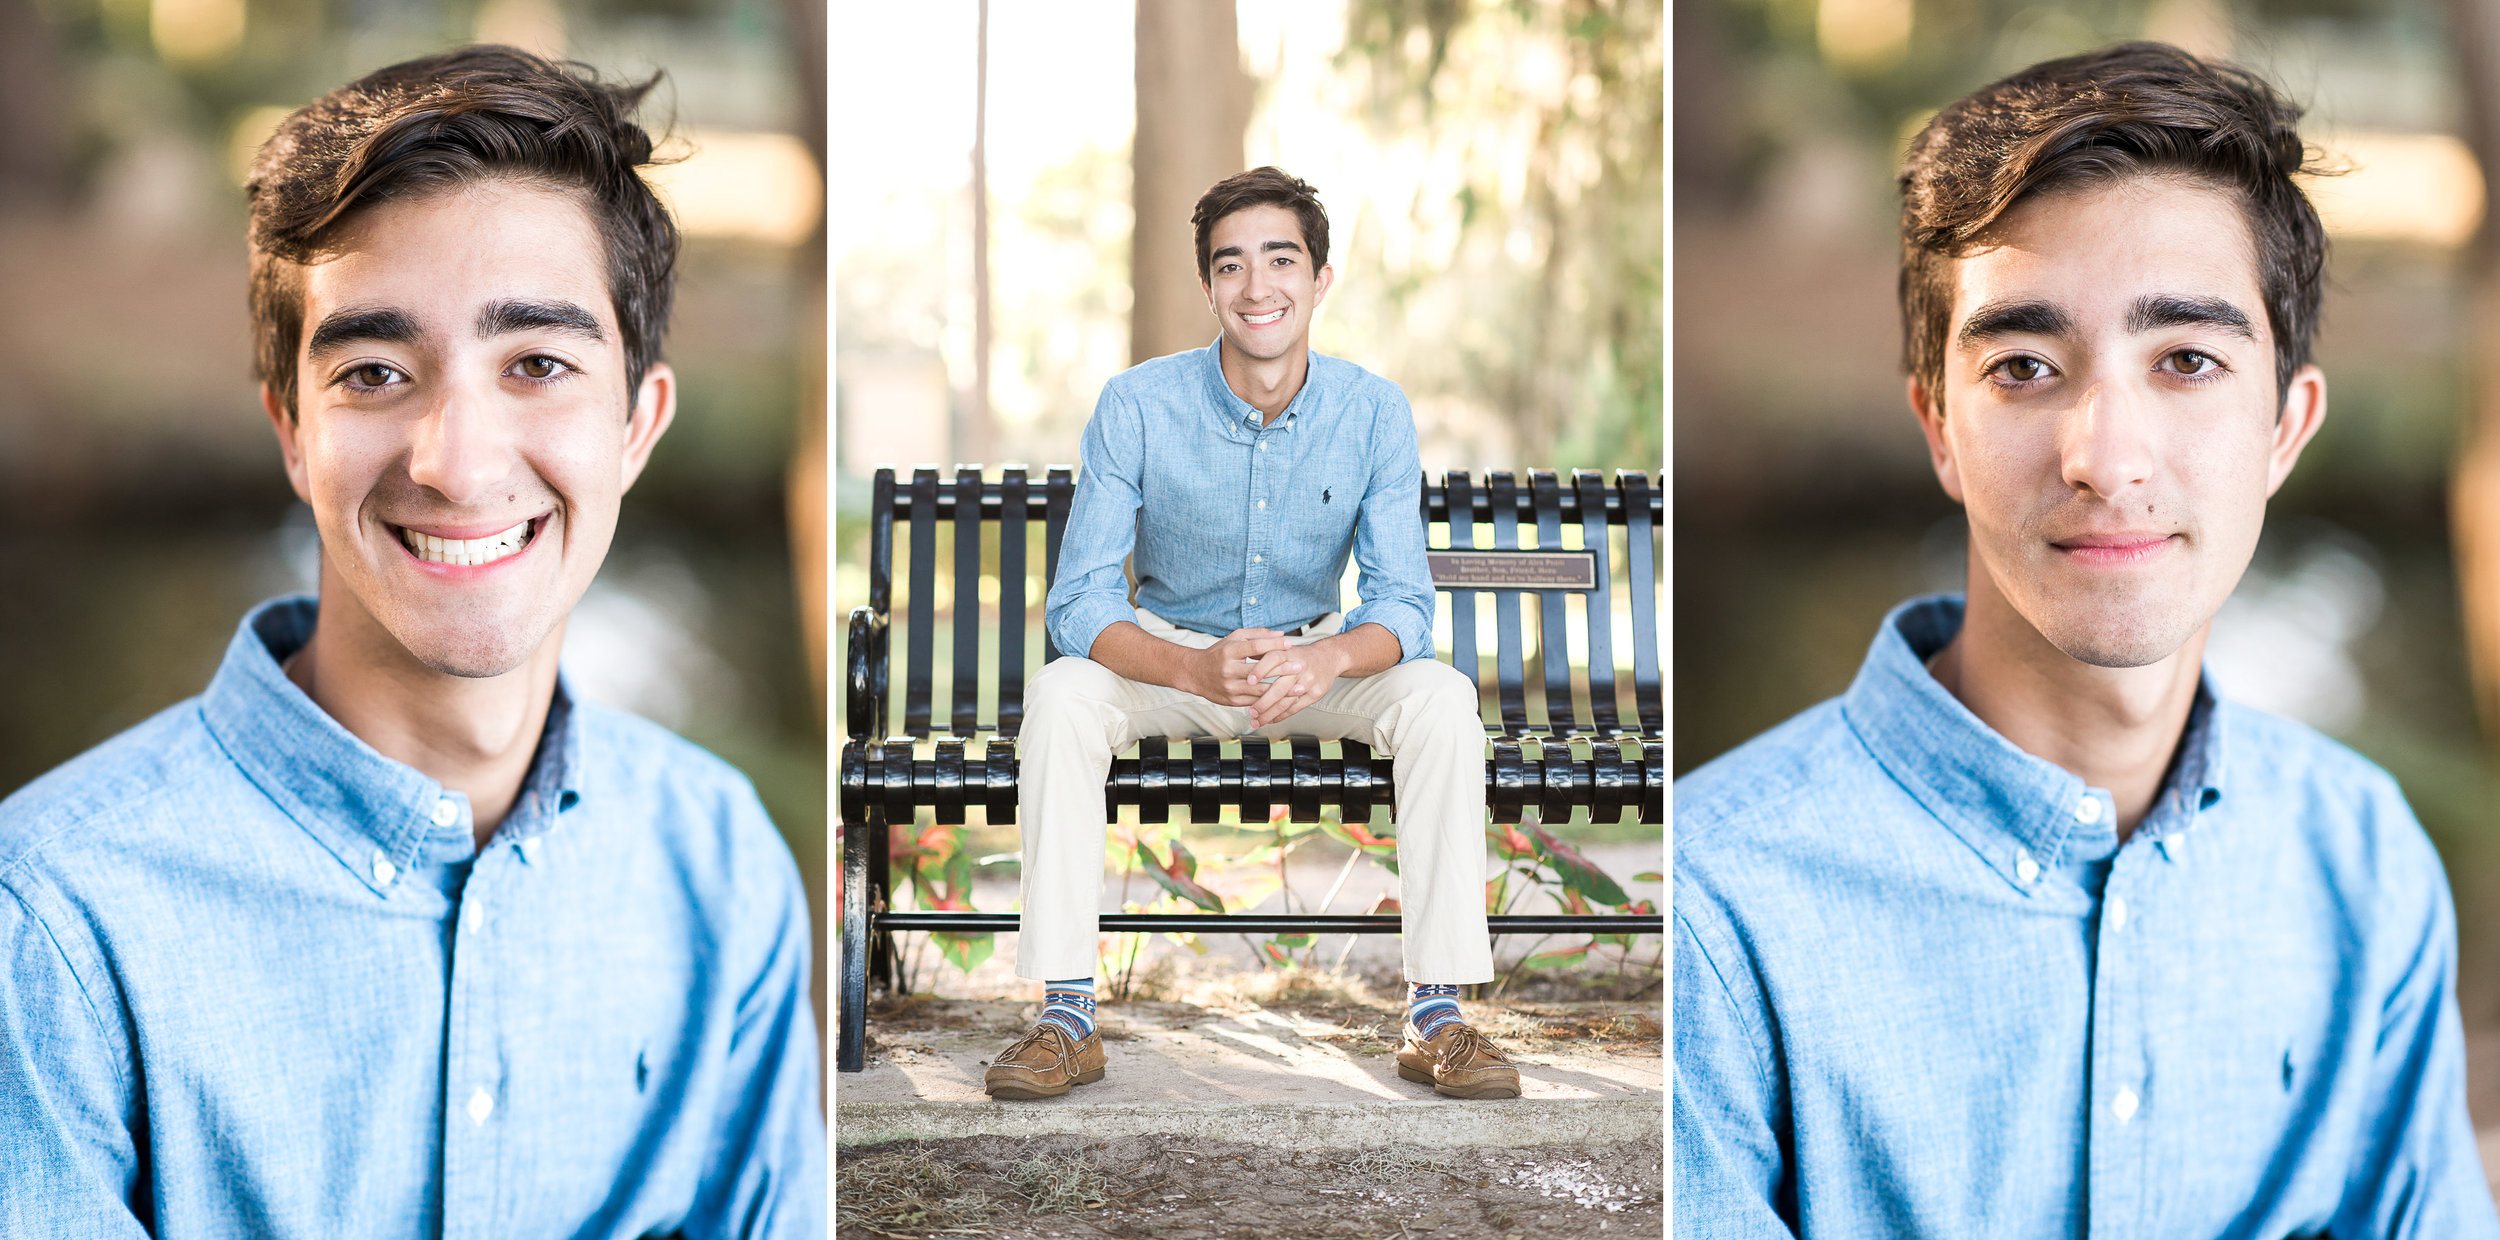 KateTaramykinStudios-Winter-Park-Senior-Portraits-Alex-3.jpg